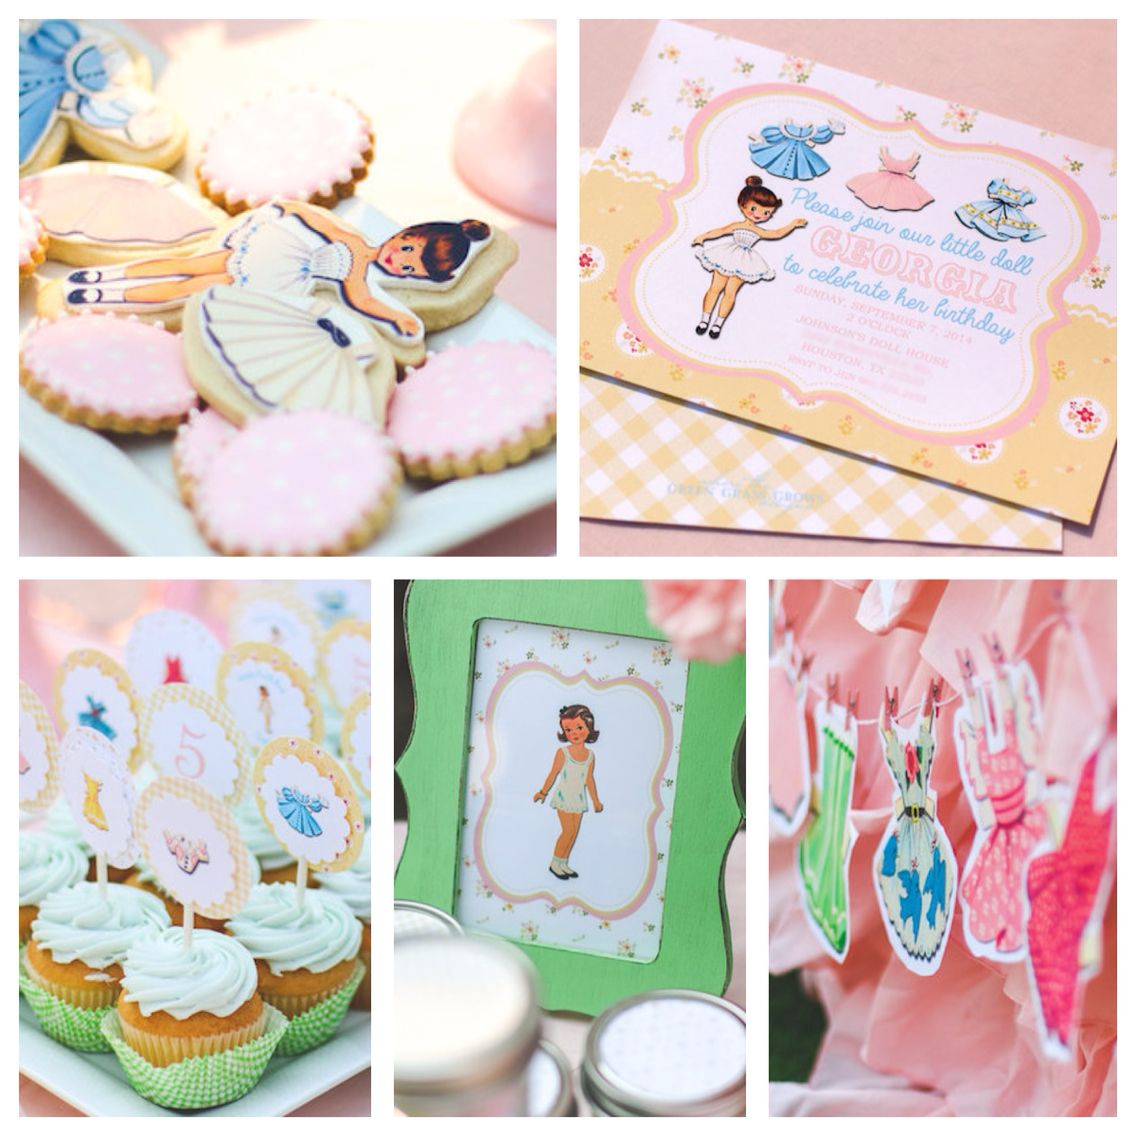 Uncategorized Vintage Themed Birthday Party girly vintage paper doll themed birthday party via karas ideas perfect theme if you